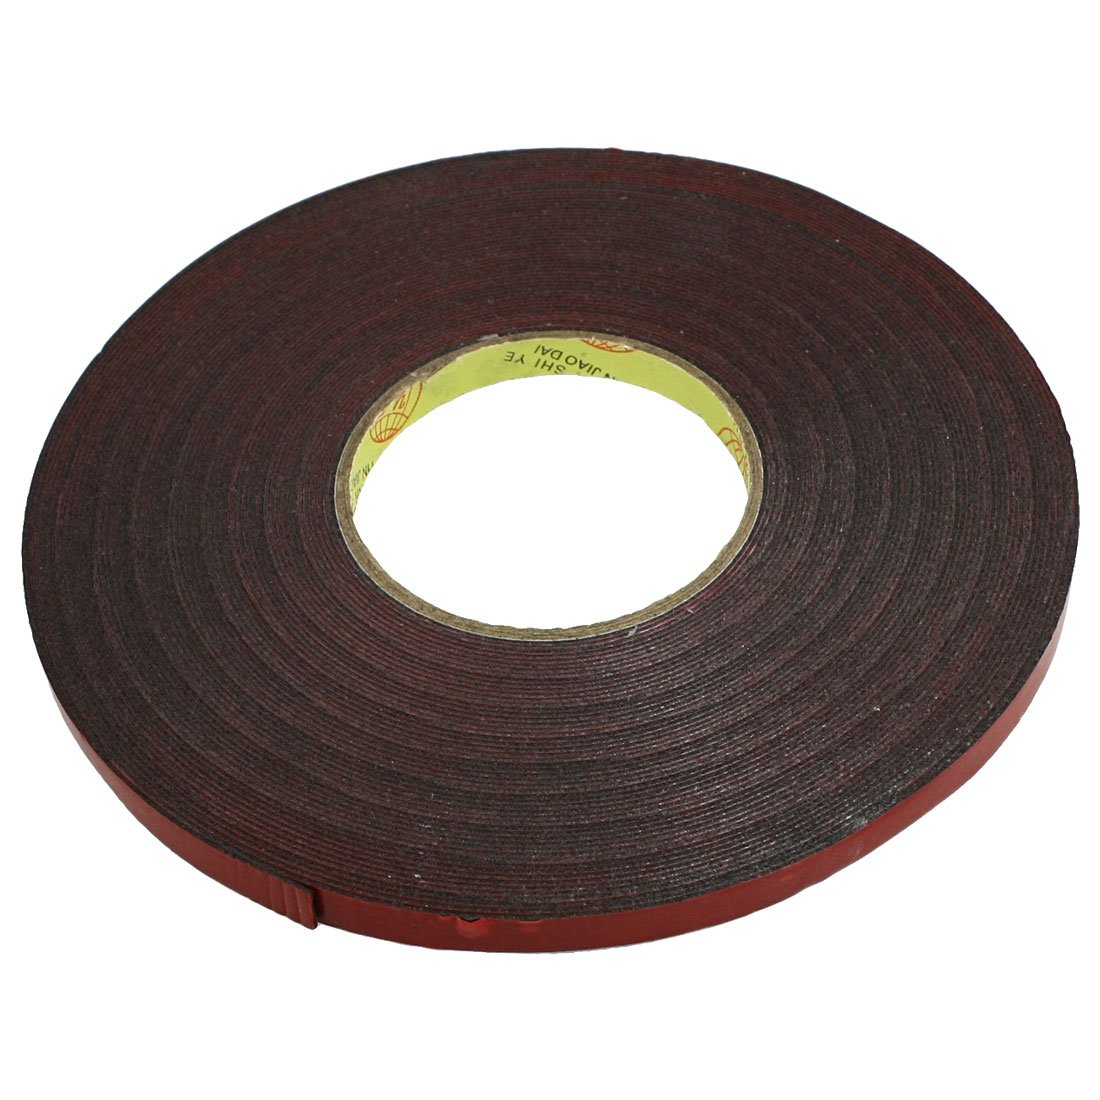 new 10mm width 30m length red film acrylic foam double sided tape for car pf 4894462048719 ebay. Black Bedroom Furniture Sets. Home Design Ideas